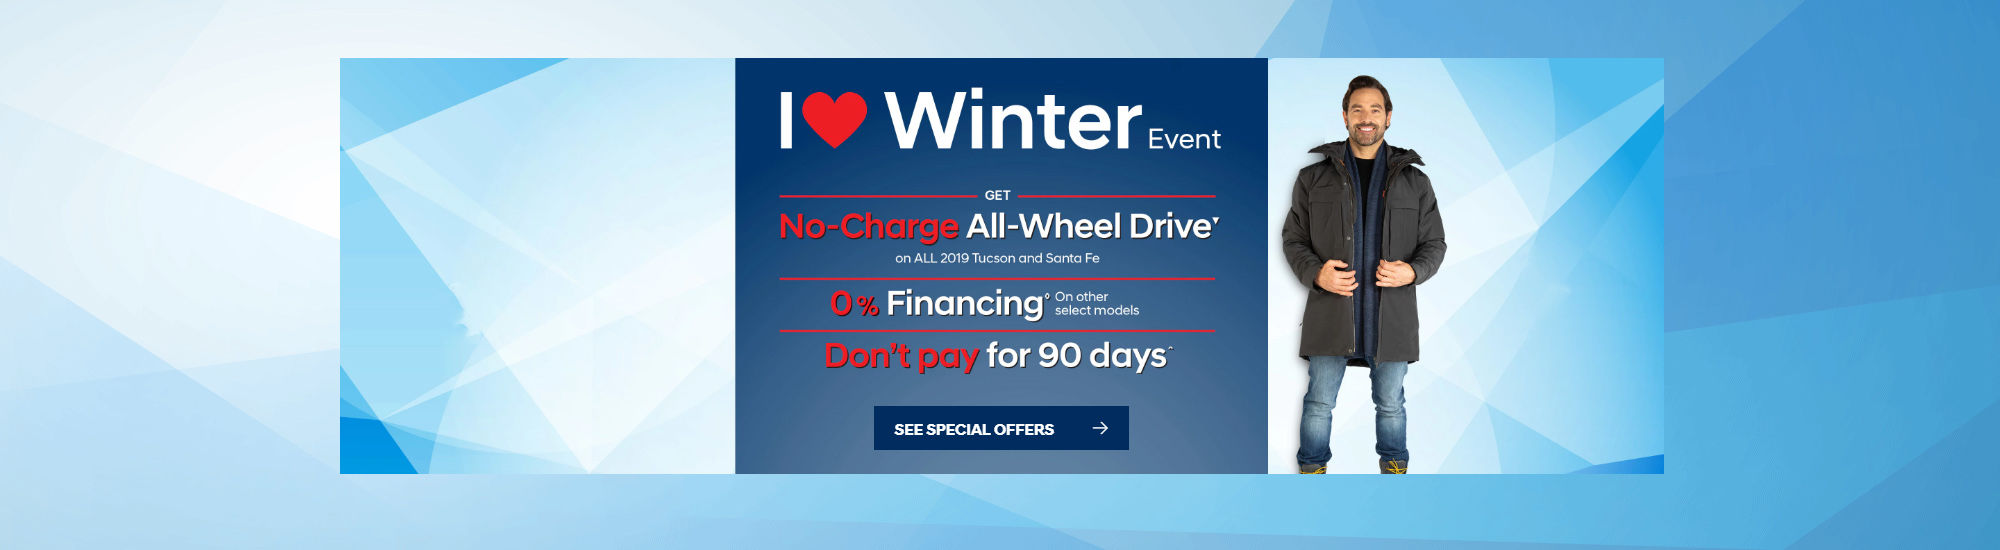 Hyundai i love winter Event